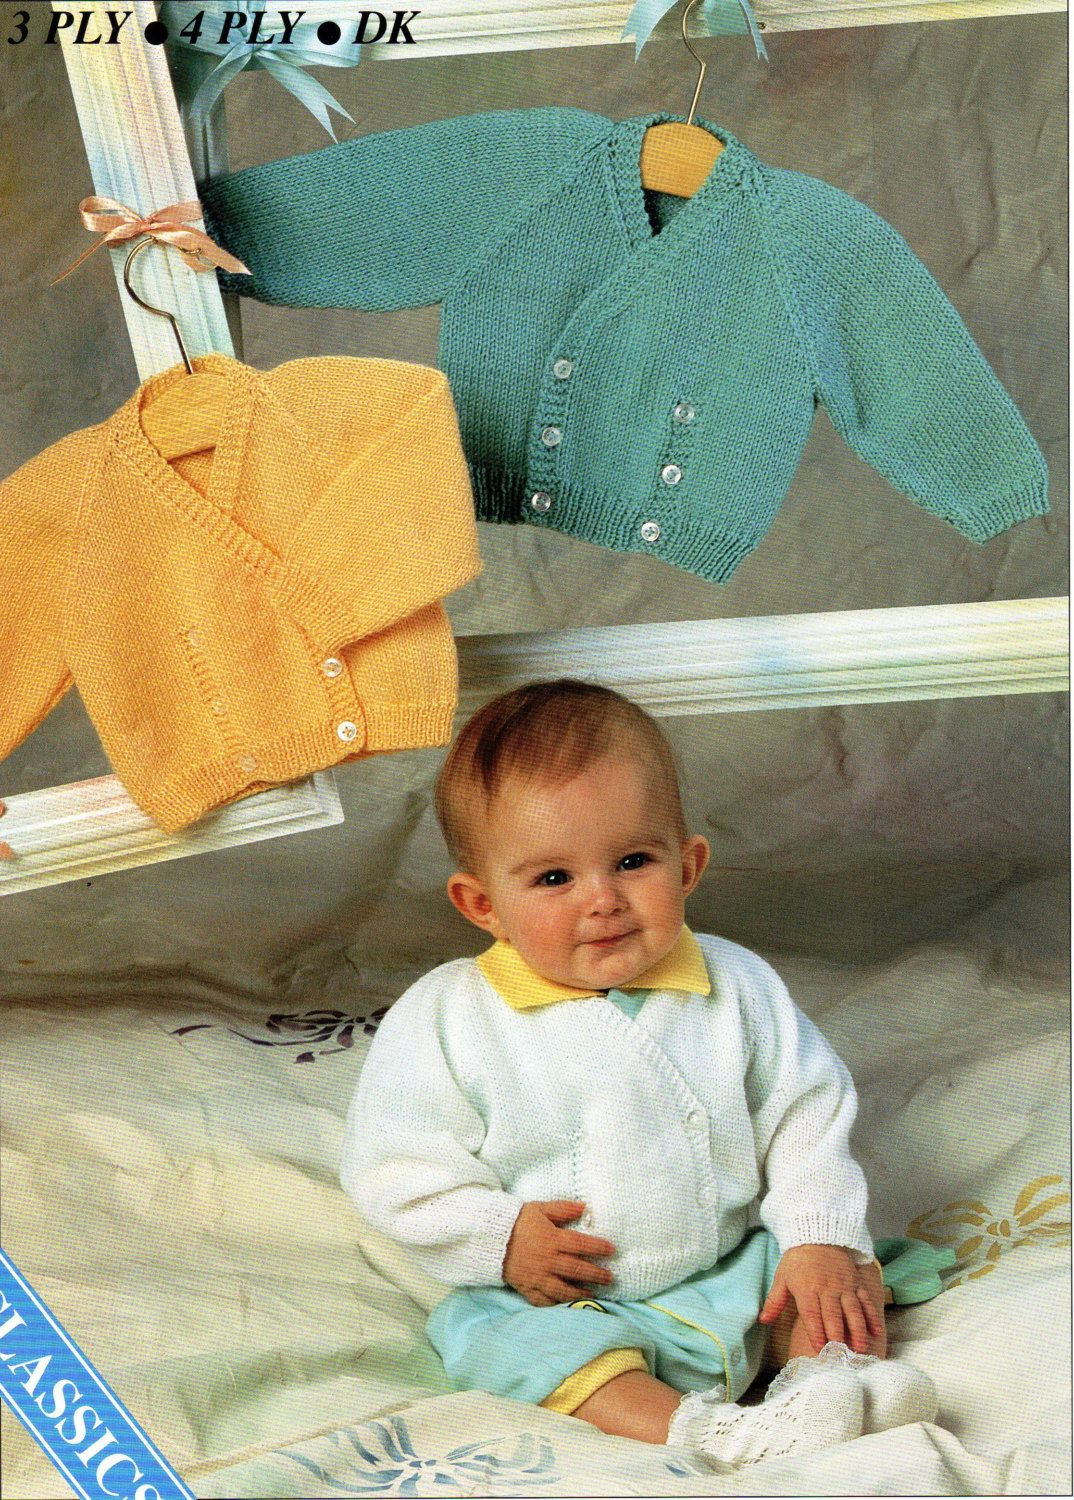 Baby crossover cardigan knitting pattern 16 22 inch 3ply 4ply dk baby crossover cardigan knitting pattern inch dk pdf by minihobo on etsy bankloansurffo Choice Image